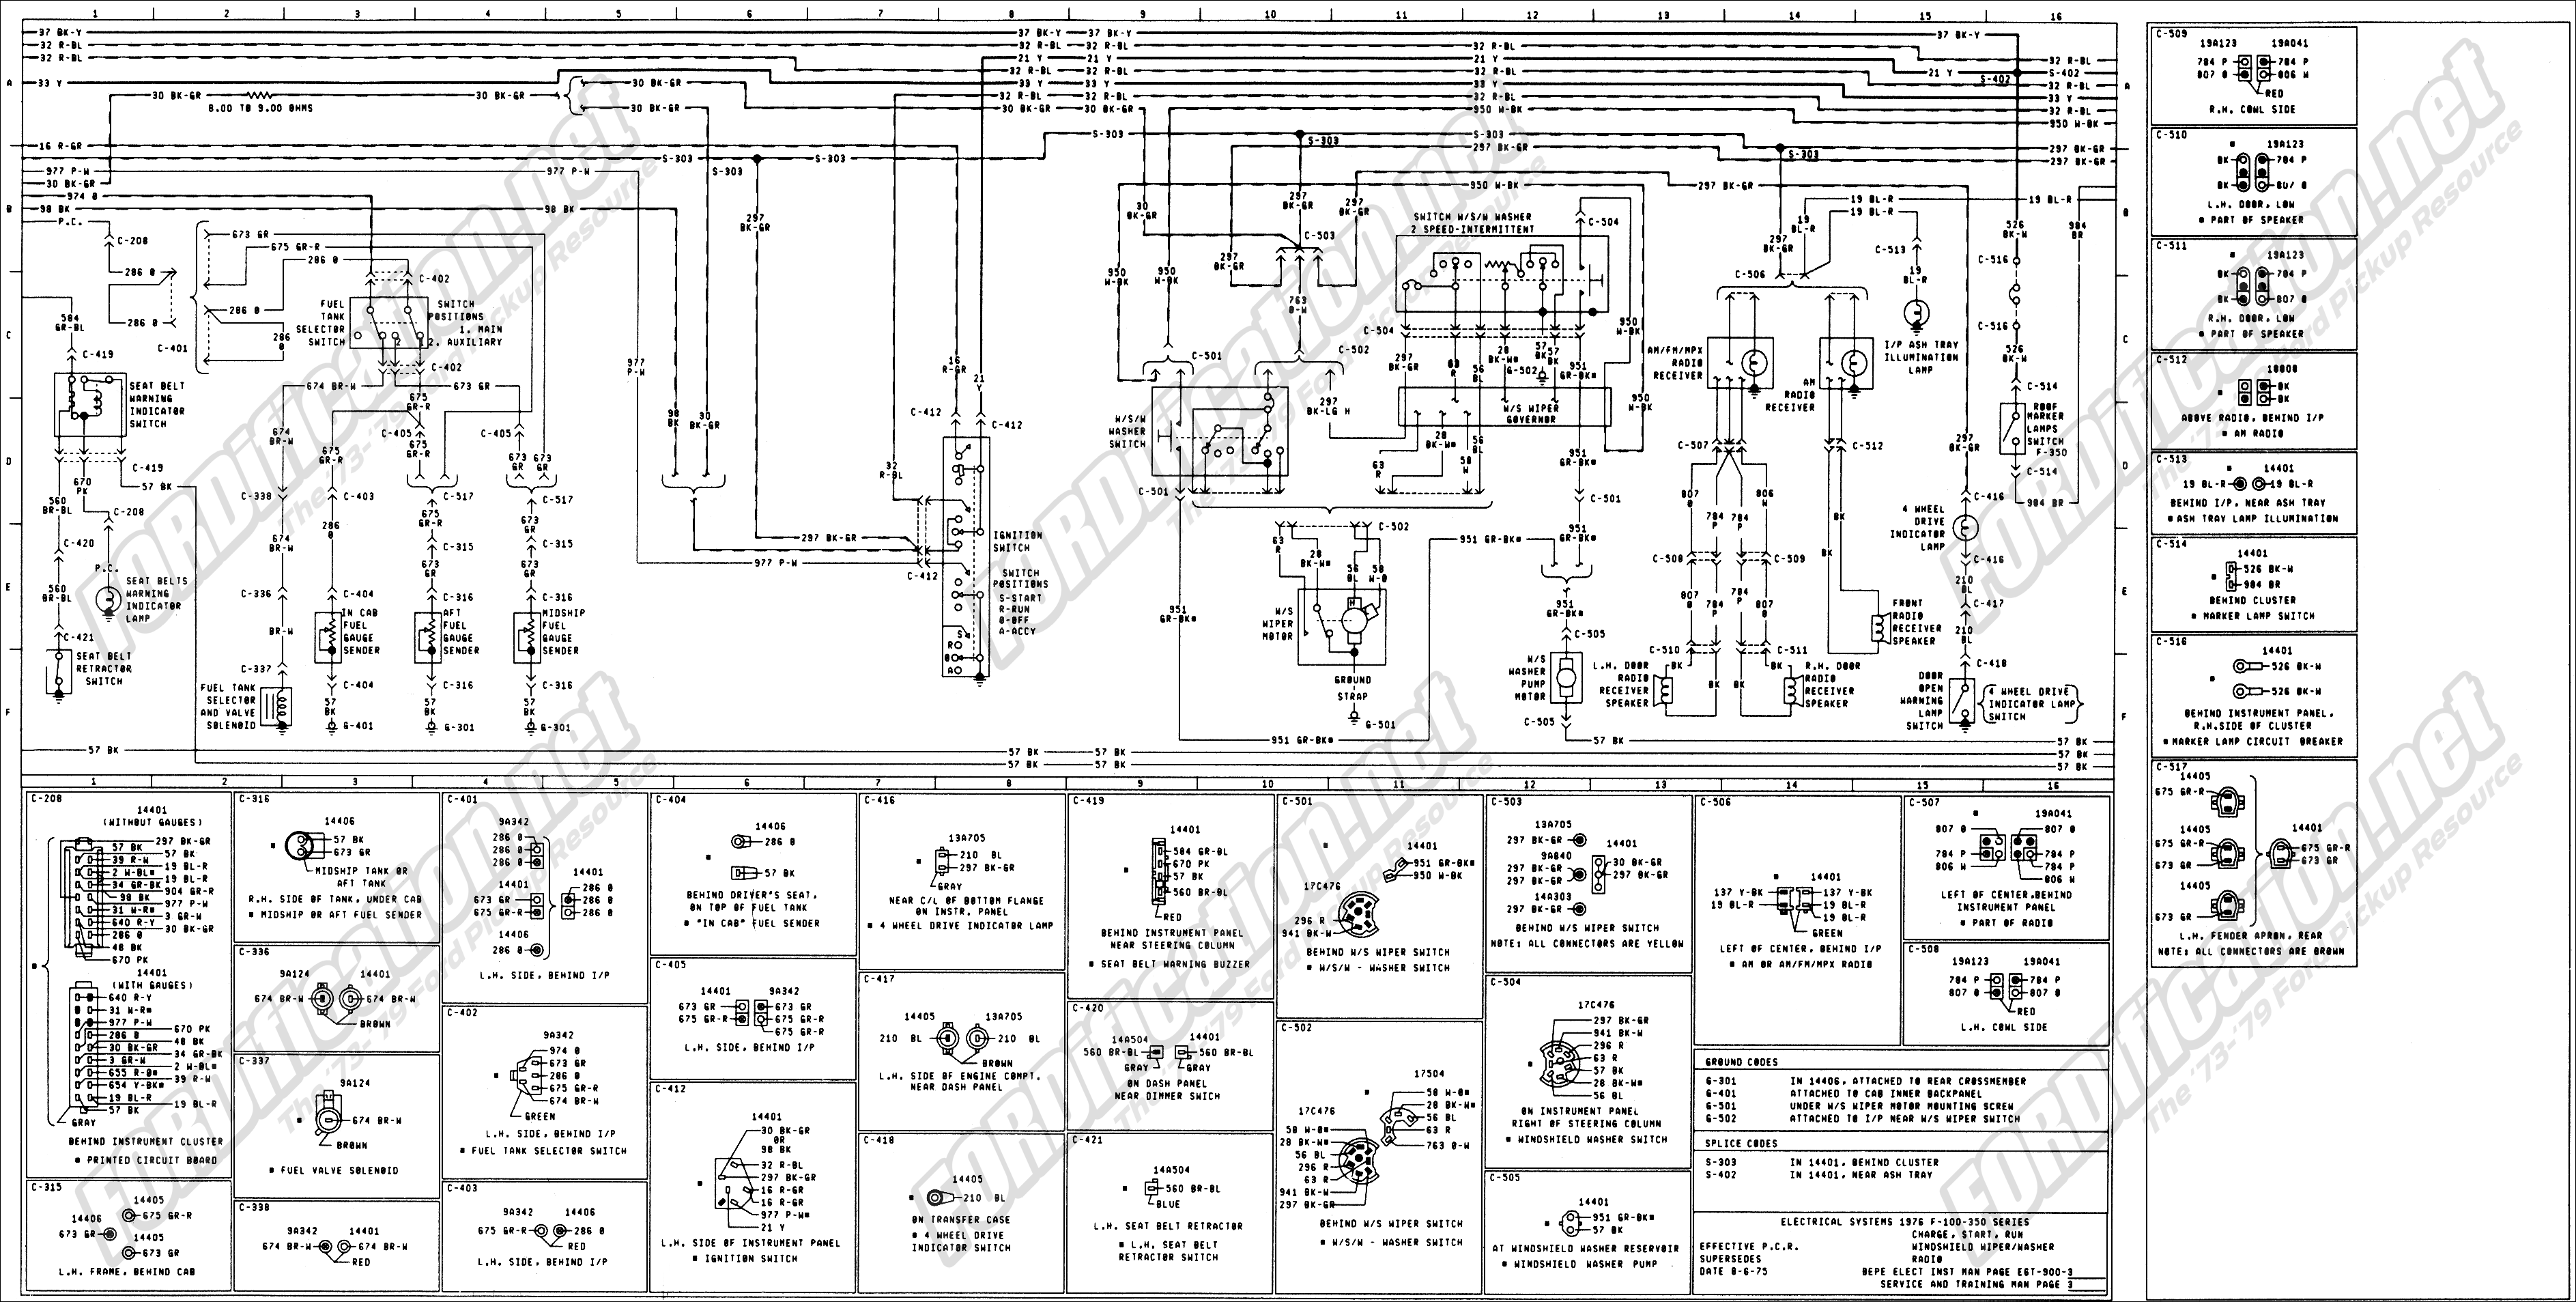 wiring_76master_3of9 1973 ford f250 wiring diagram ford f 150 starter wiring diagram wiring diagram for 2002 f250 starter at webbmarketing.co